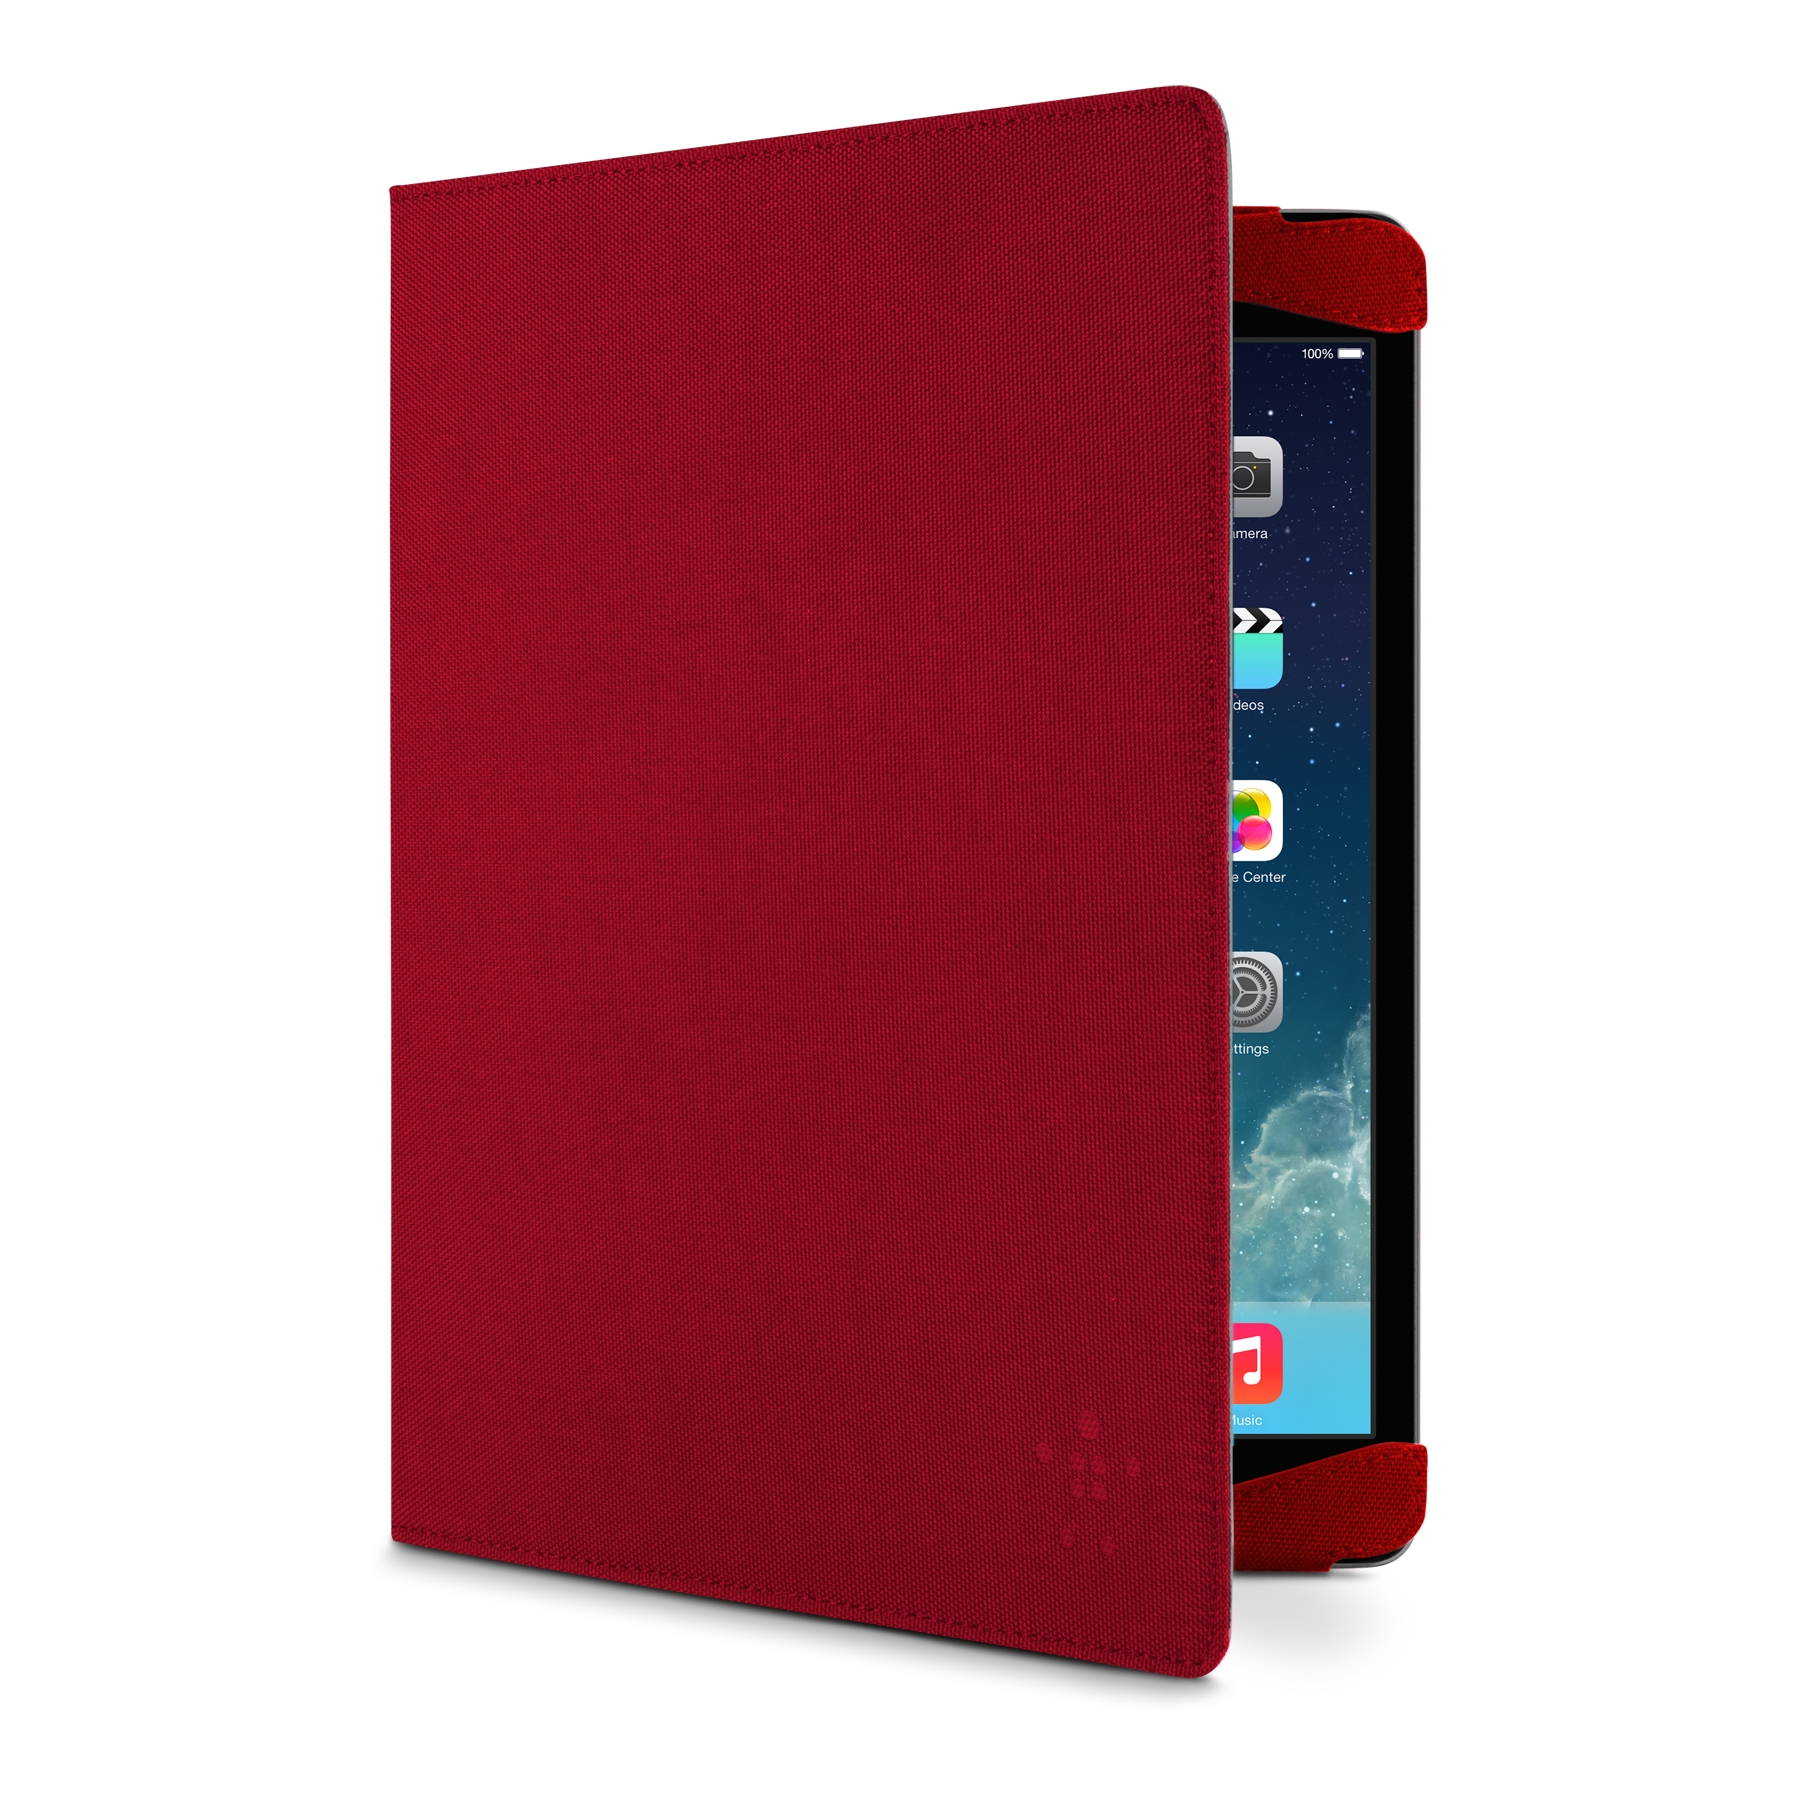 Classic Strap Cover for iPad Air_F7N053 - Red